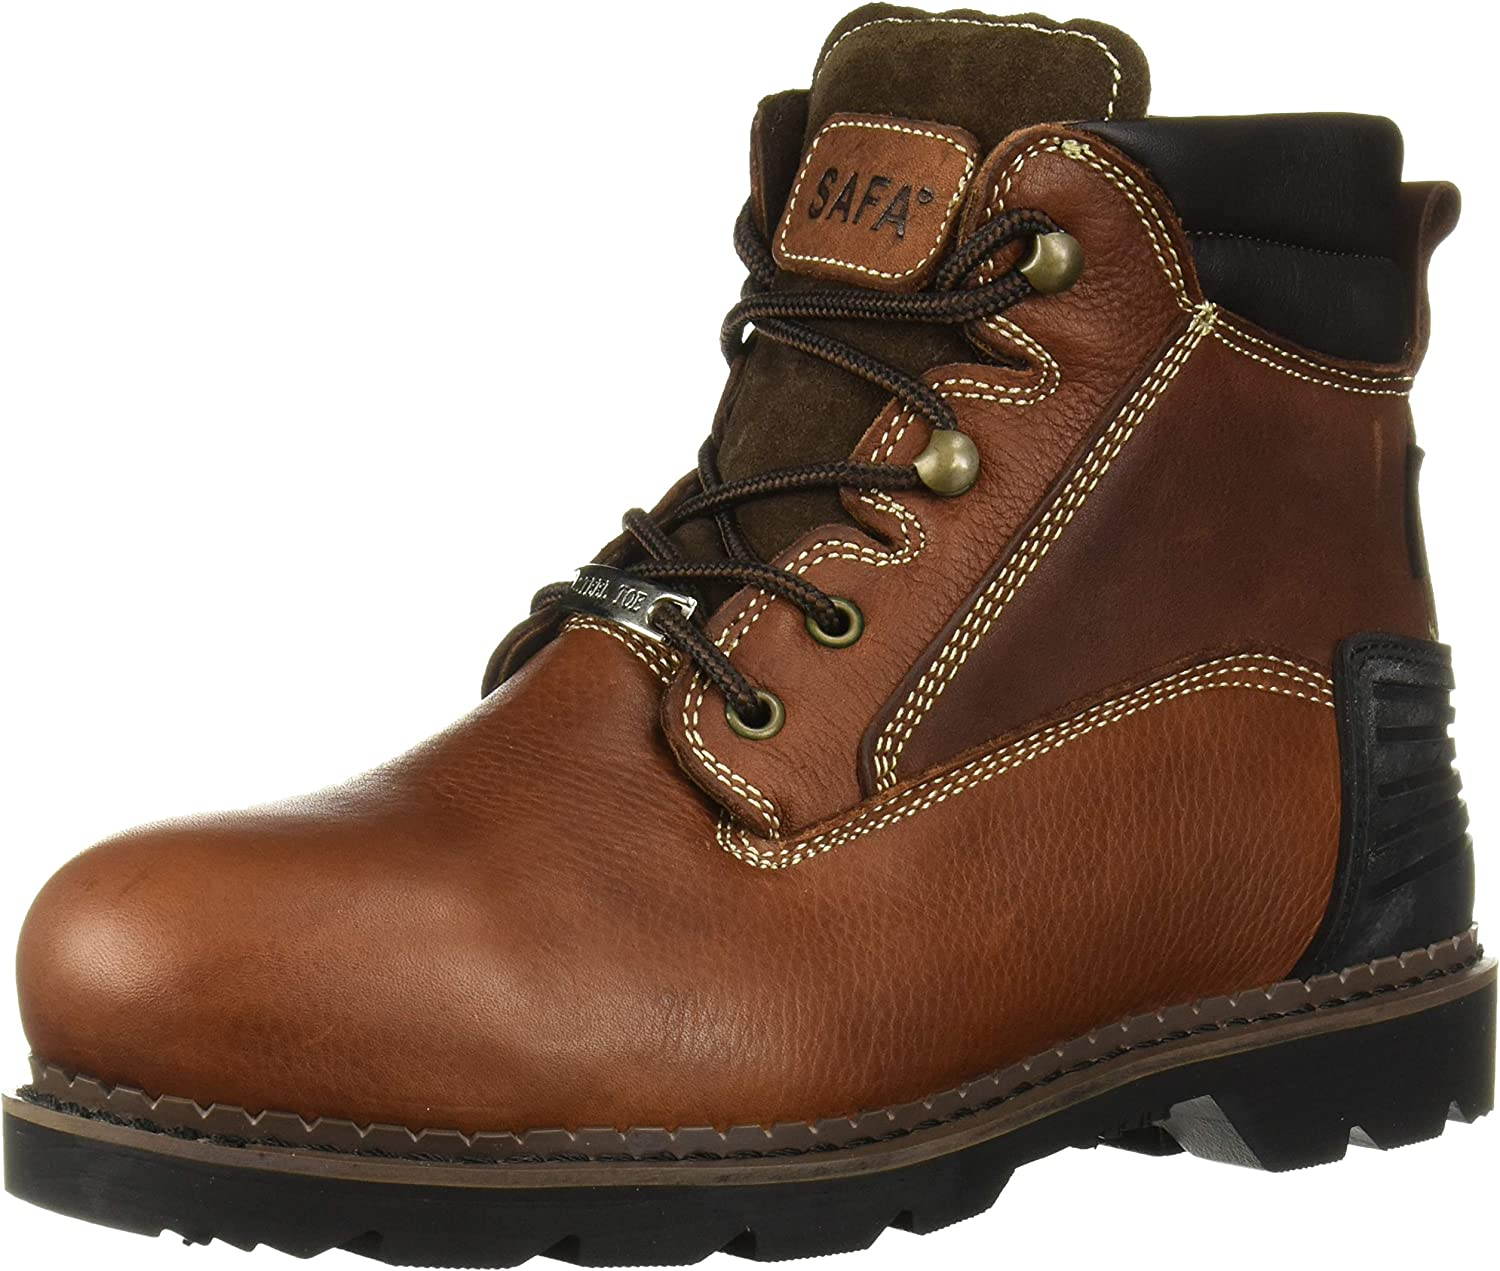 AdTec Men's 9400 Industrial Boot, Brown, 12 W US